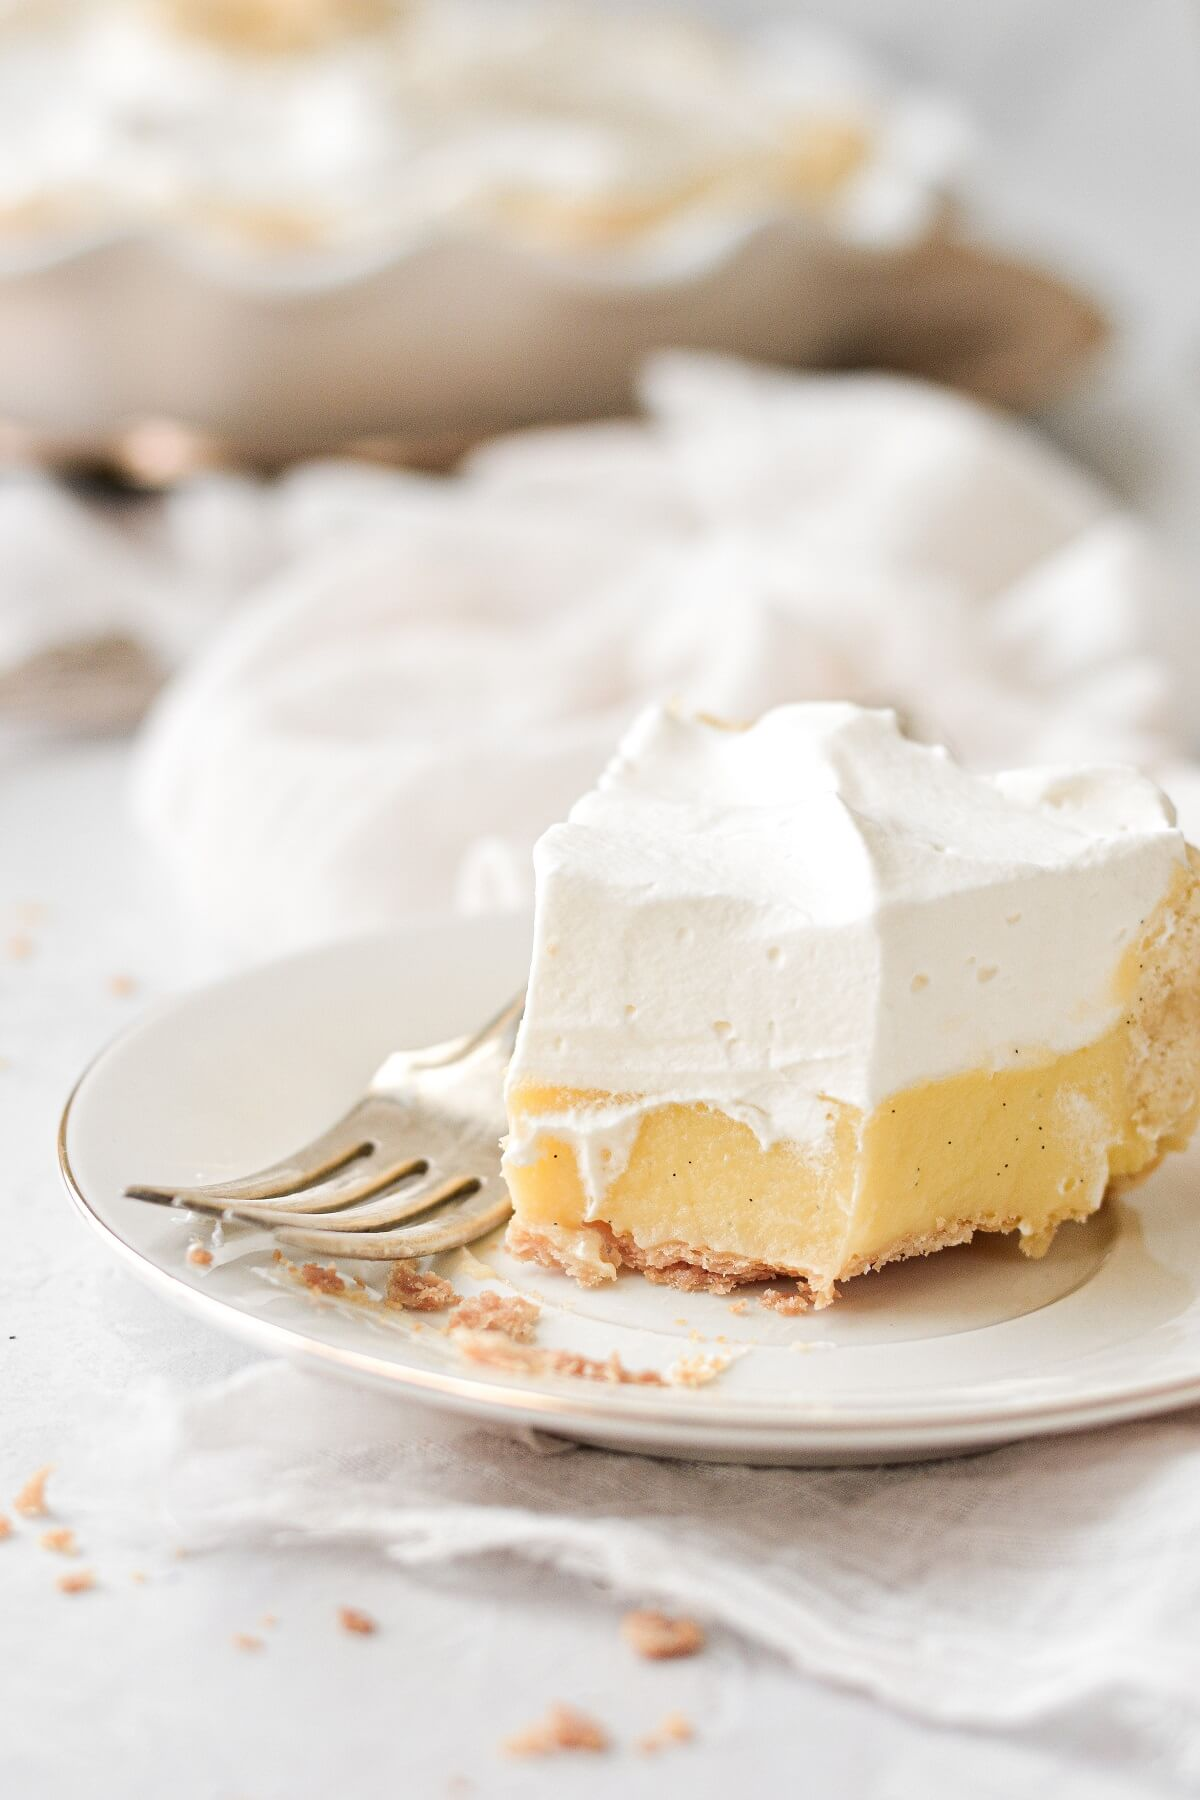 A slice of banana cream pie with one bite taken.